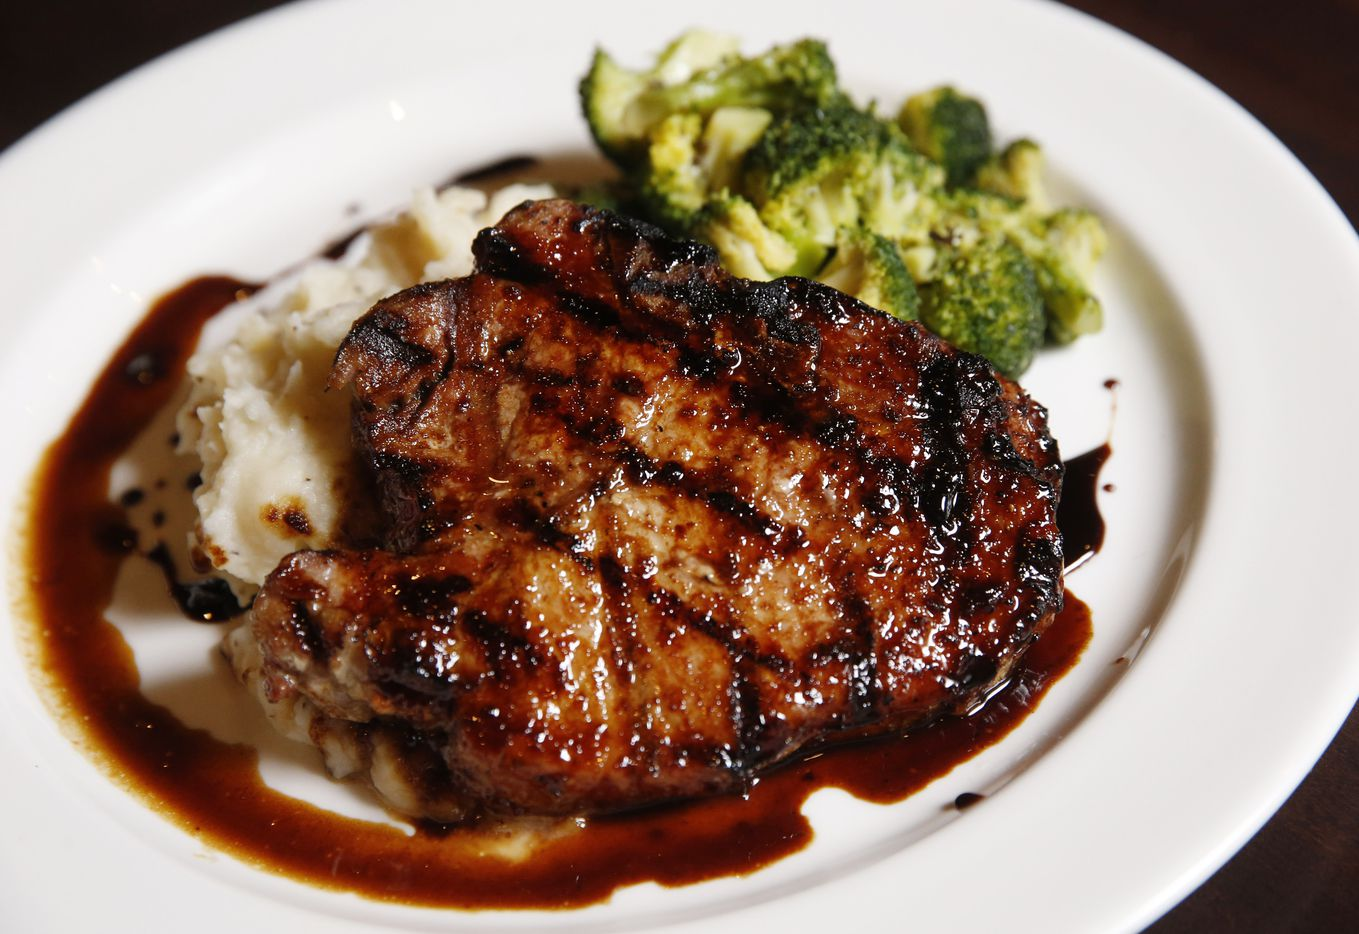 Dr Pepper pork chop dish at Daylight Golf on Thursday, January 21, 2021in Grapevine, Texas. The sports bar restaurant features virtual golf.